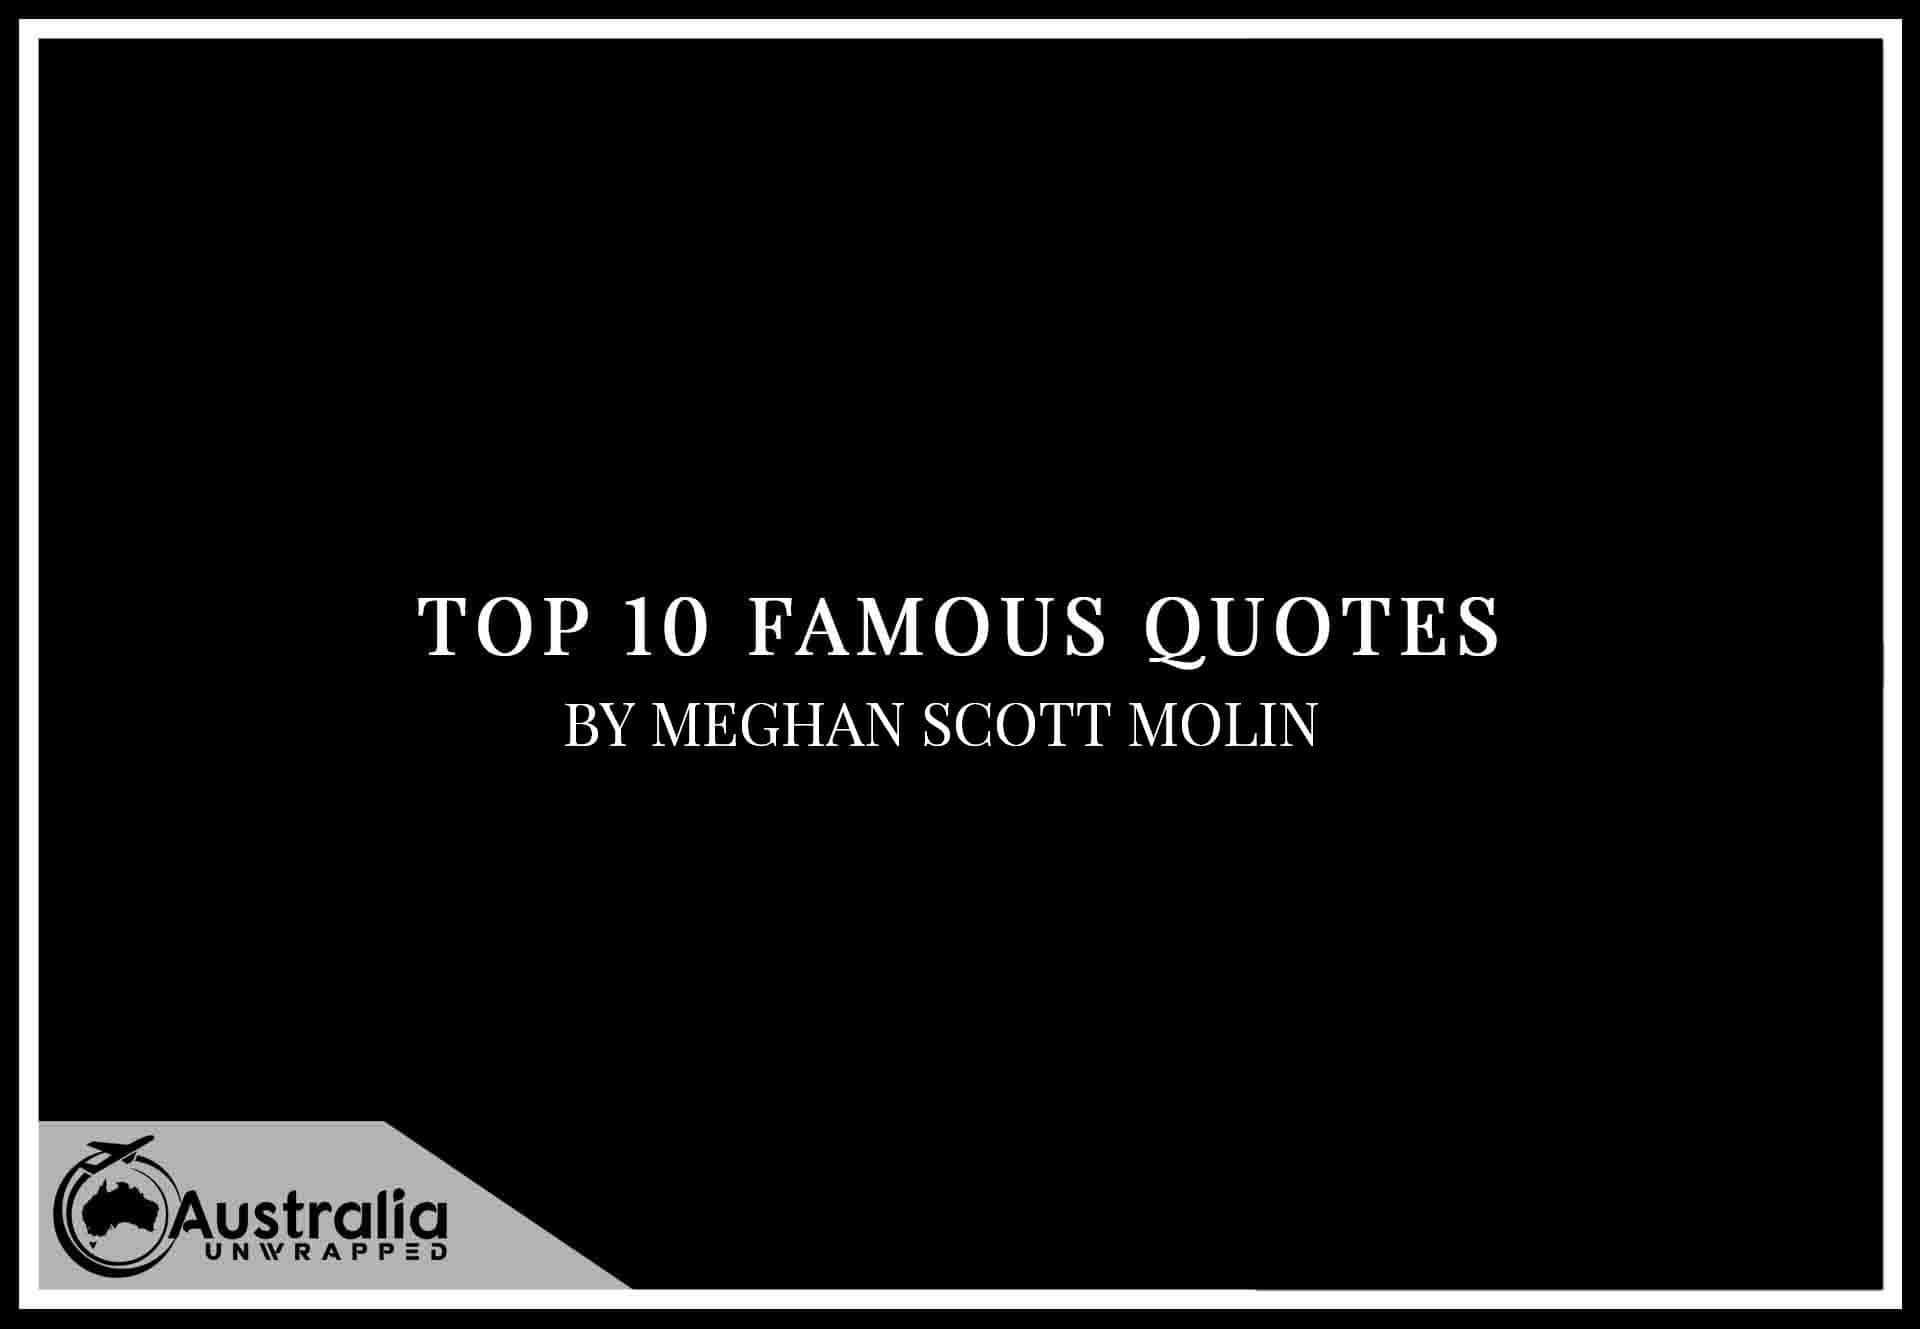 Top 10 Famous Quotes by Author Meghan Scott Molin